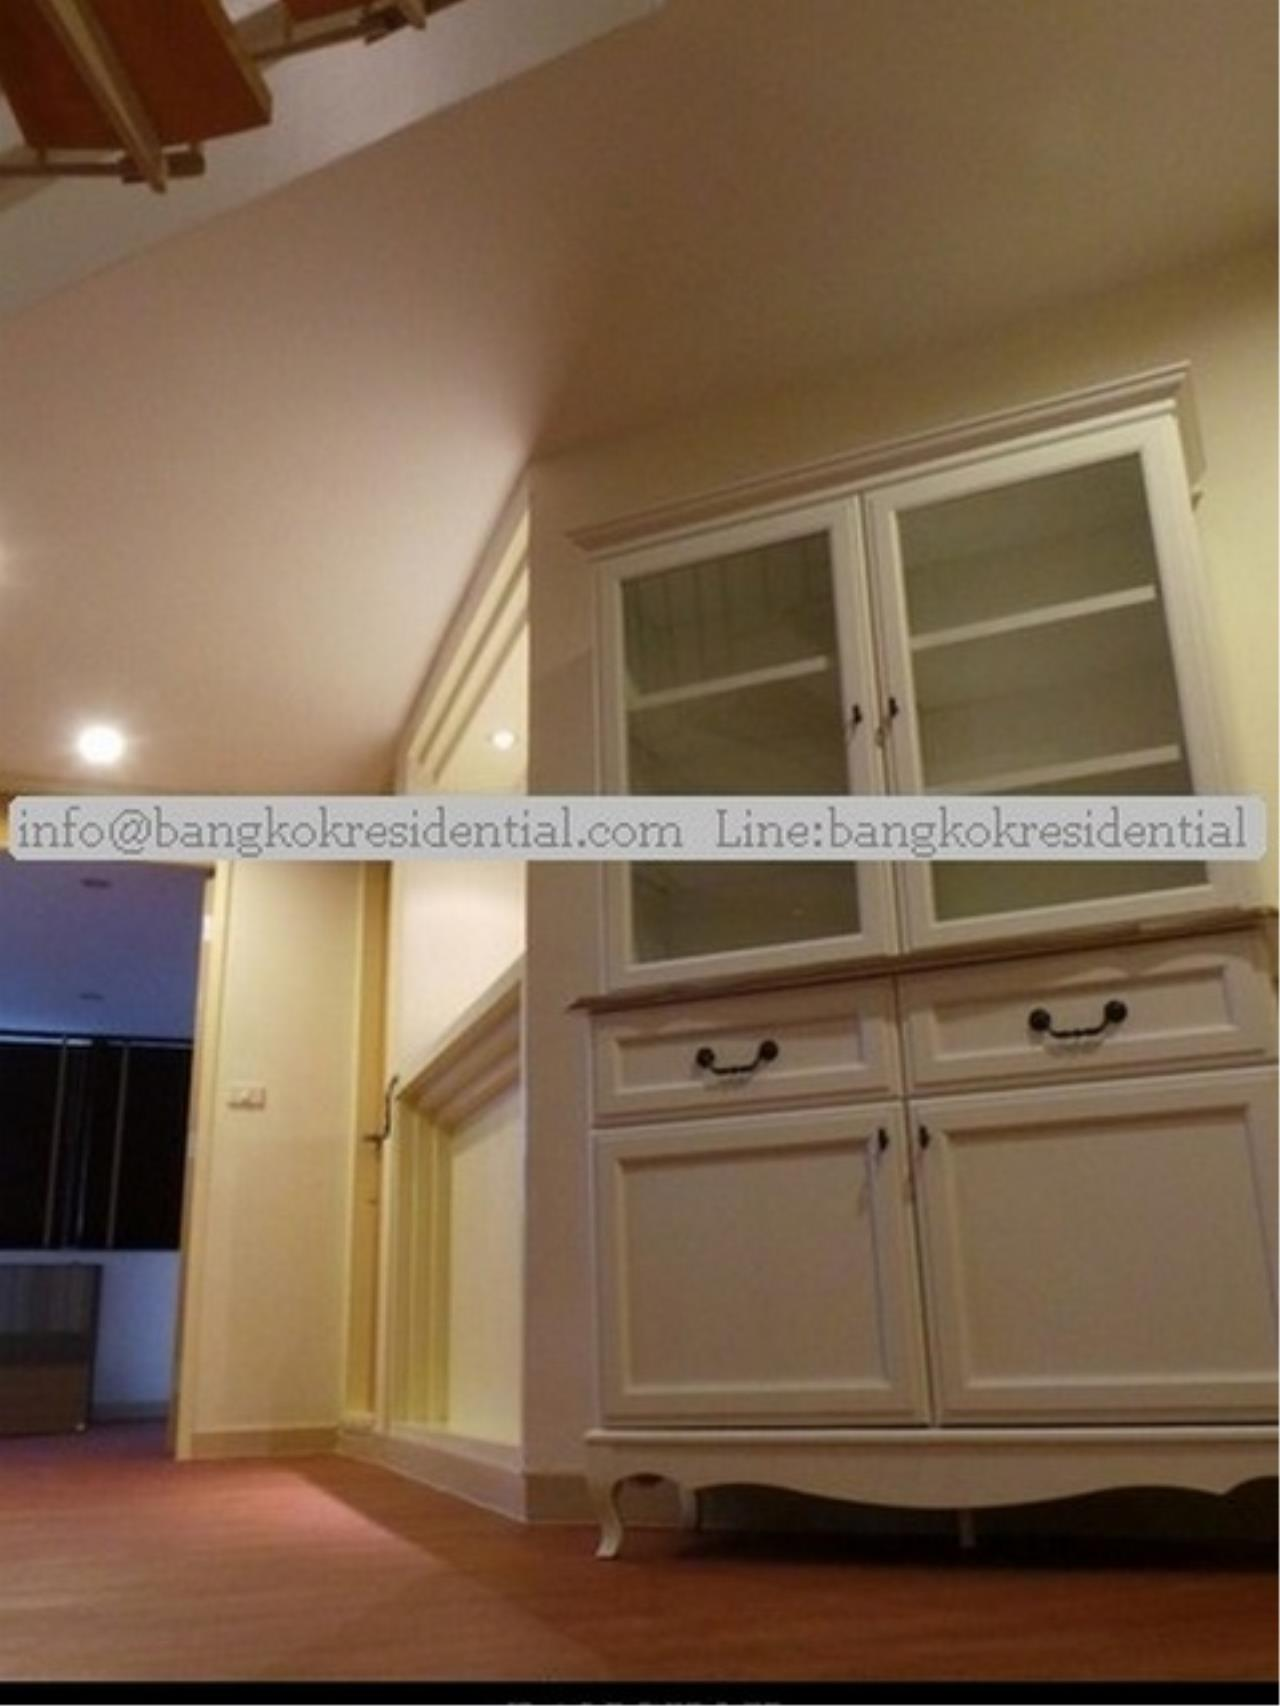 Bangkok Residential Agency's 3BR Tai Ping Tower For Rent (BR4448CD) 12